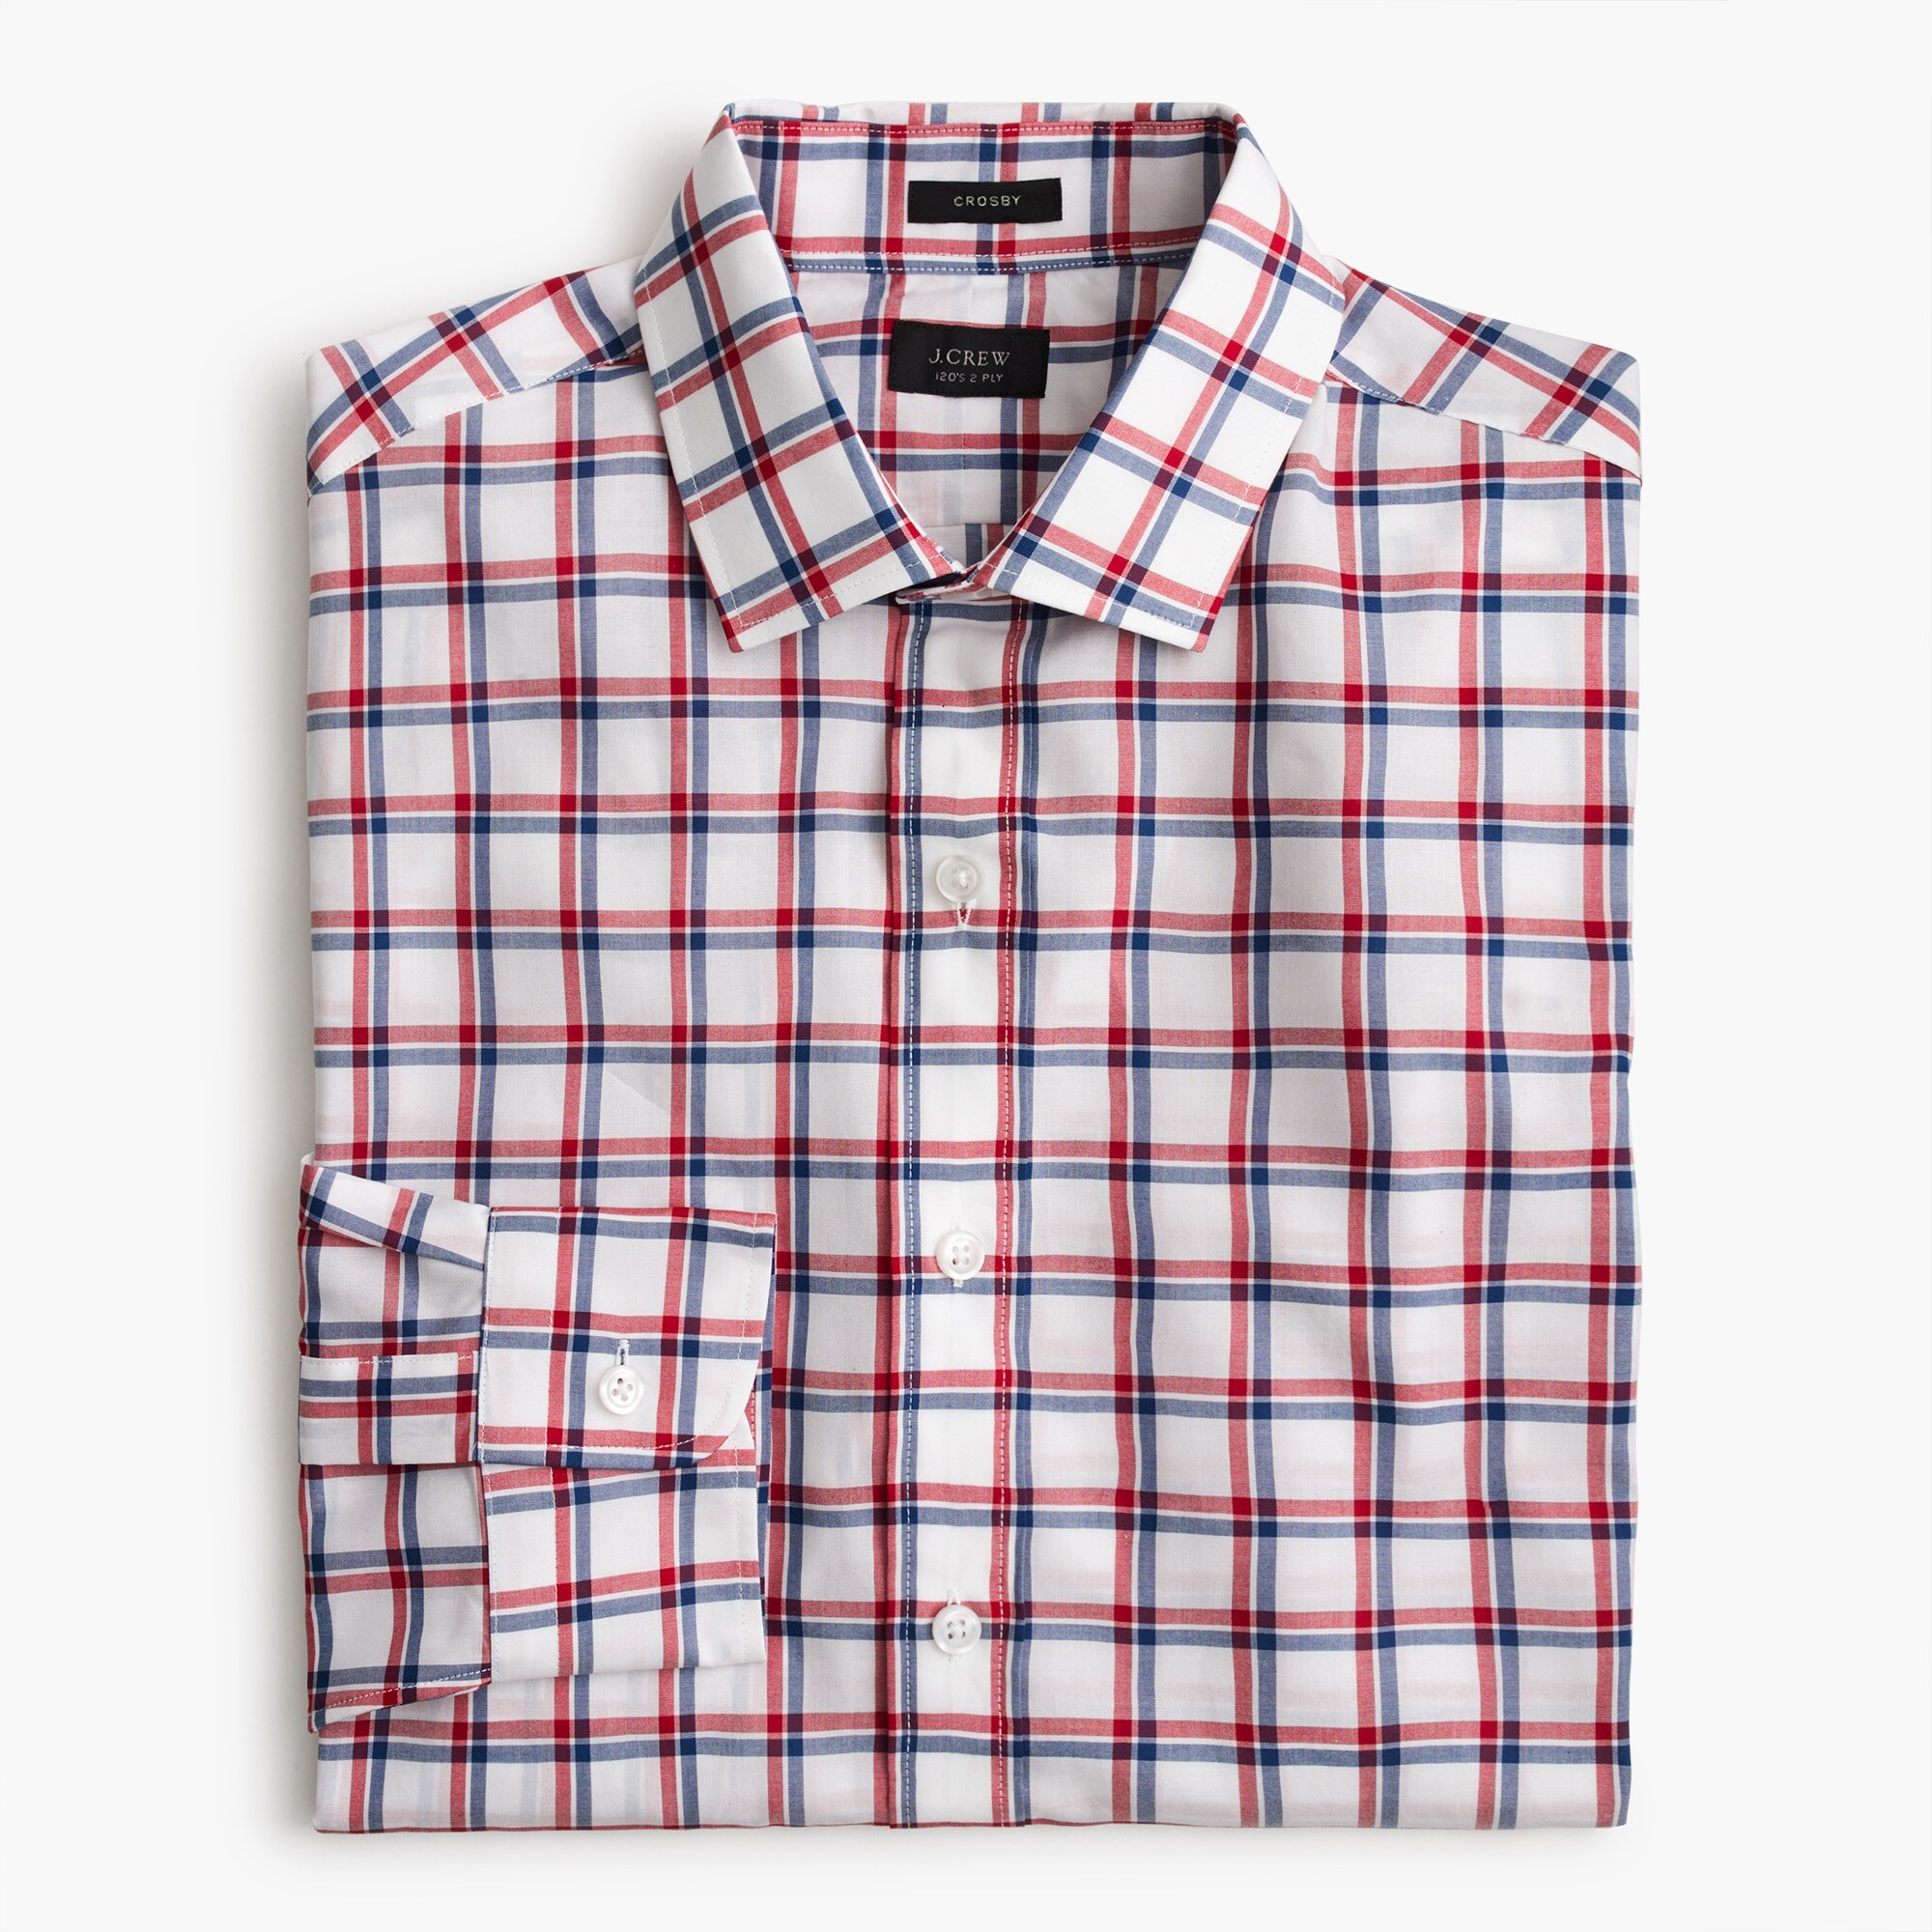 Crosby Classic-fit shirt in red and blue tattersall